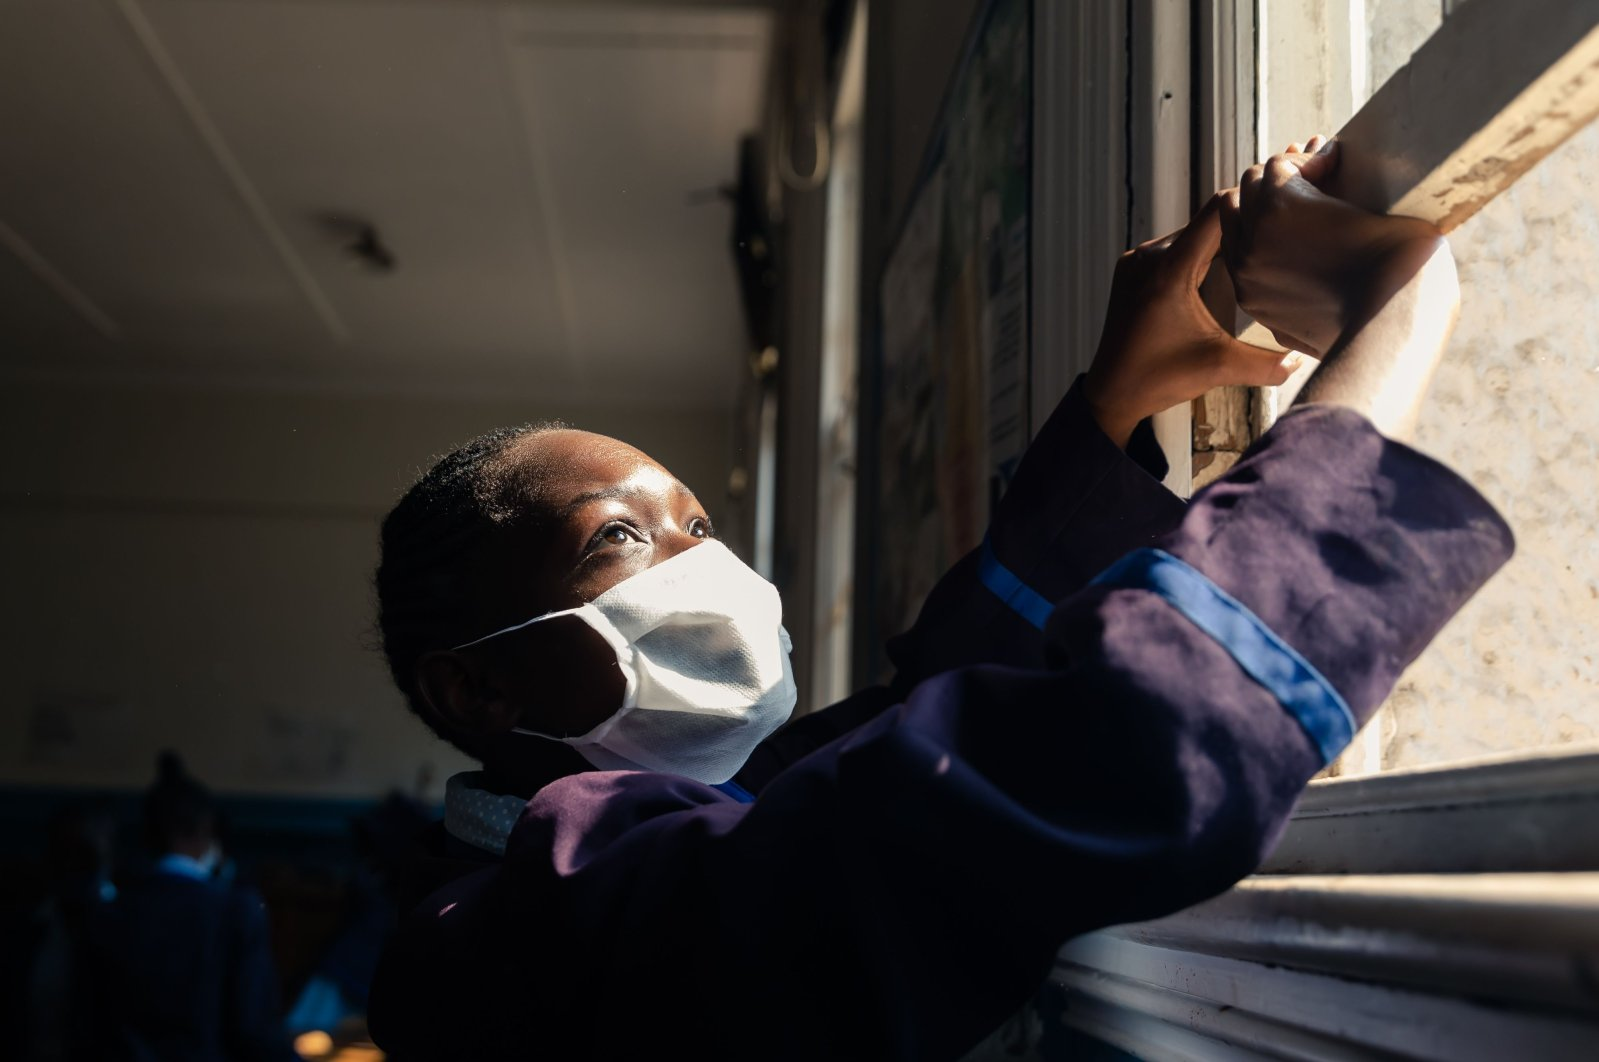 A pupil opens a window for fresh air circulation in the class room ahead of the first day of the resumption of classes at Queen Elizabeth School in Harare on September 28, 2020. (AFP Photo)